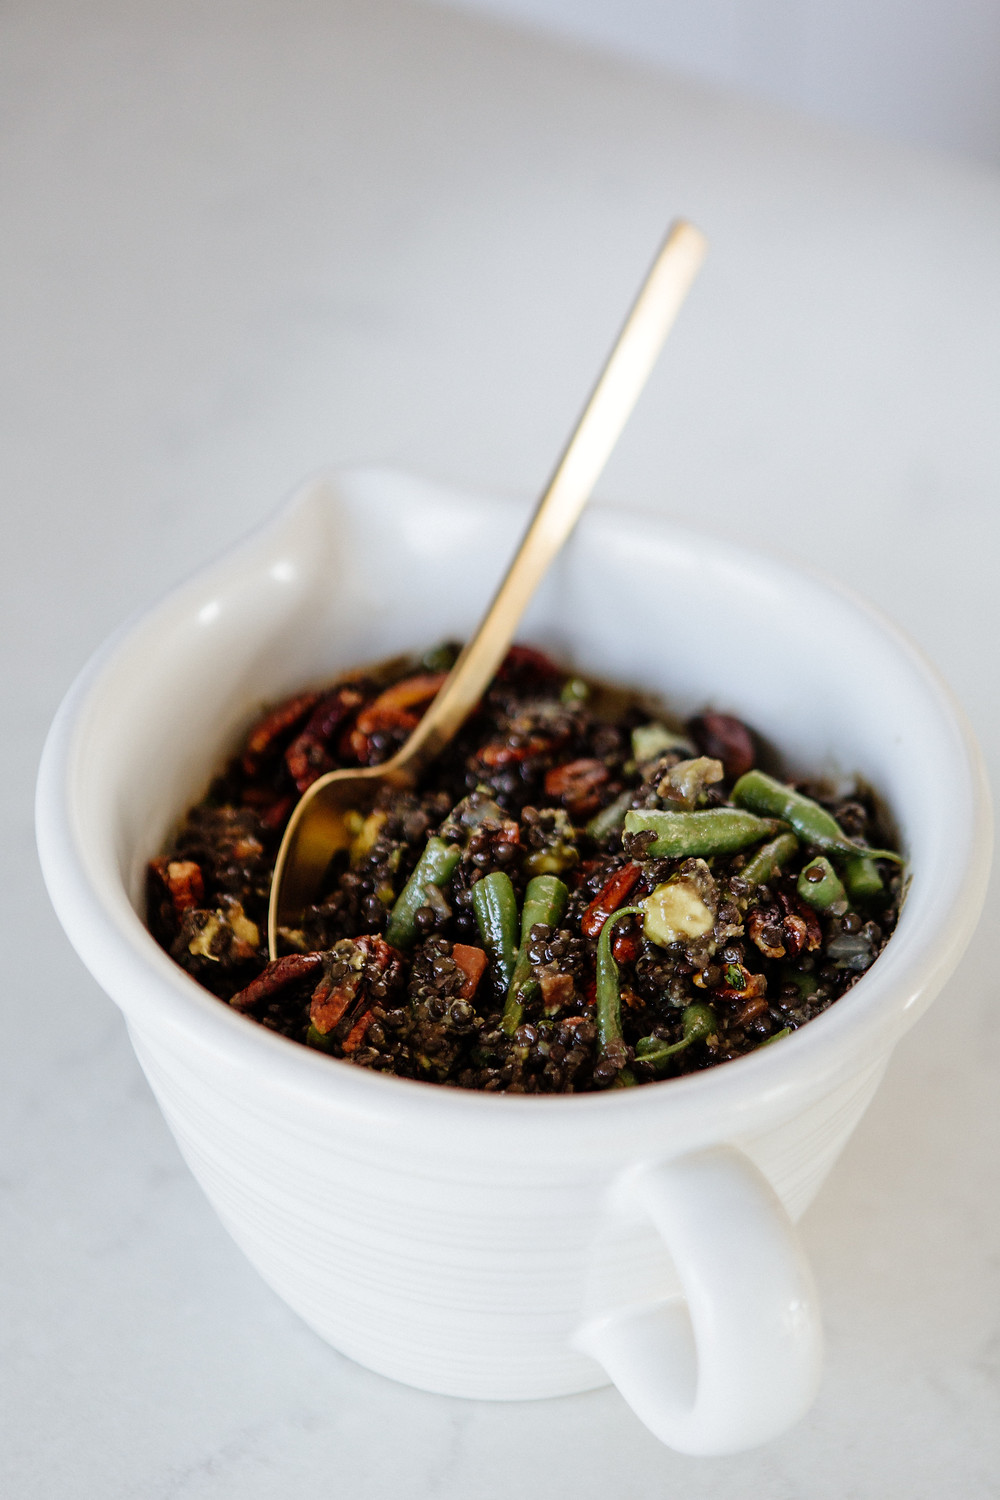 Lentil salad with avocado, green beans, and pomegranate molasses